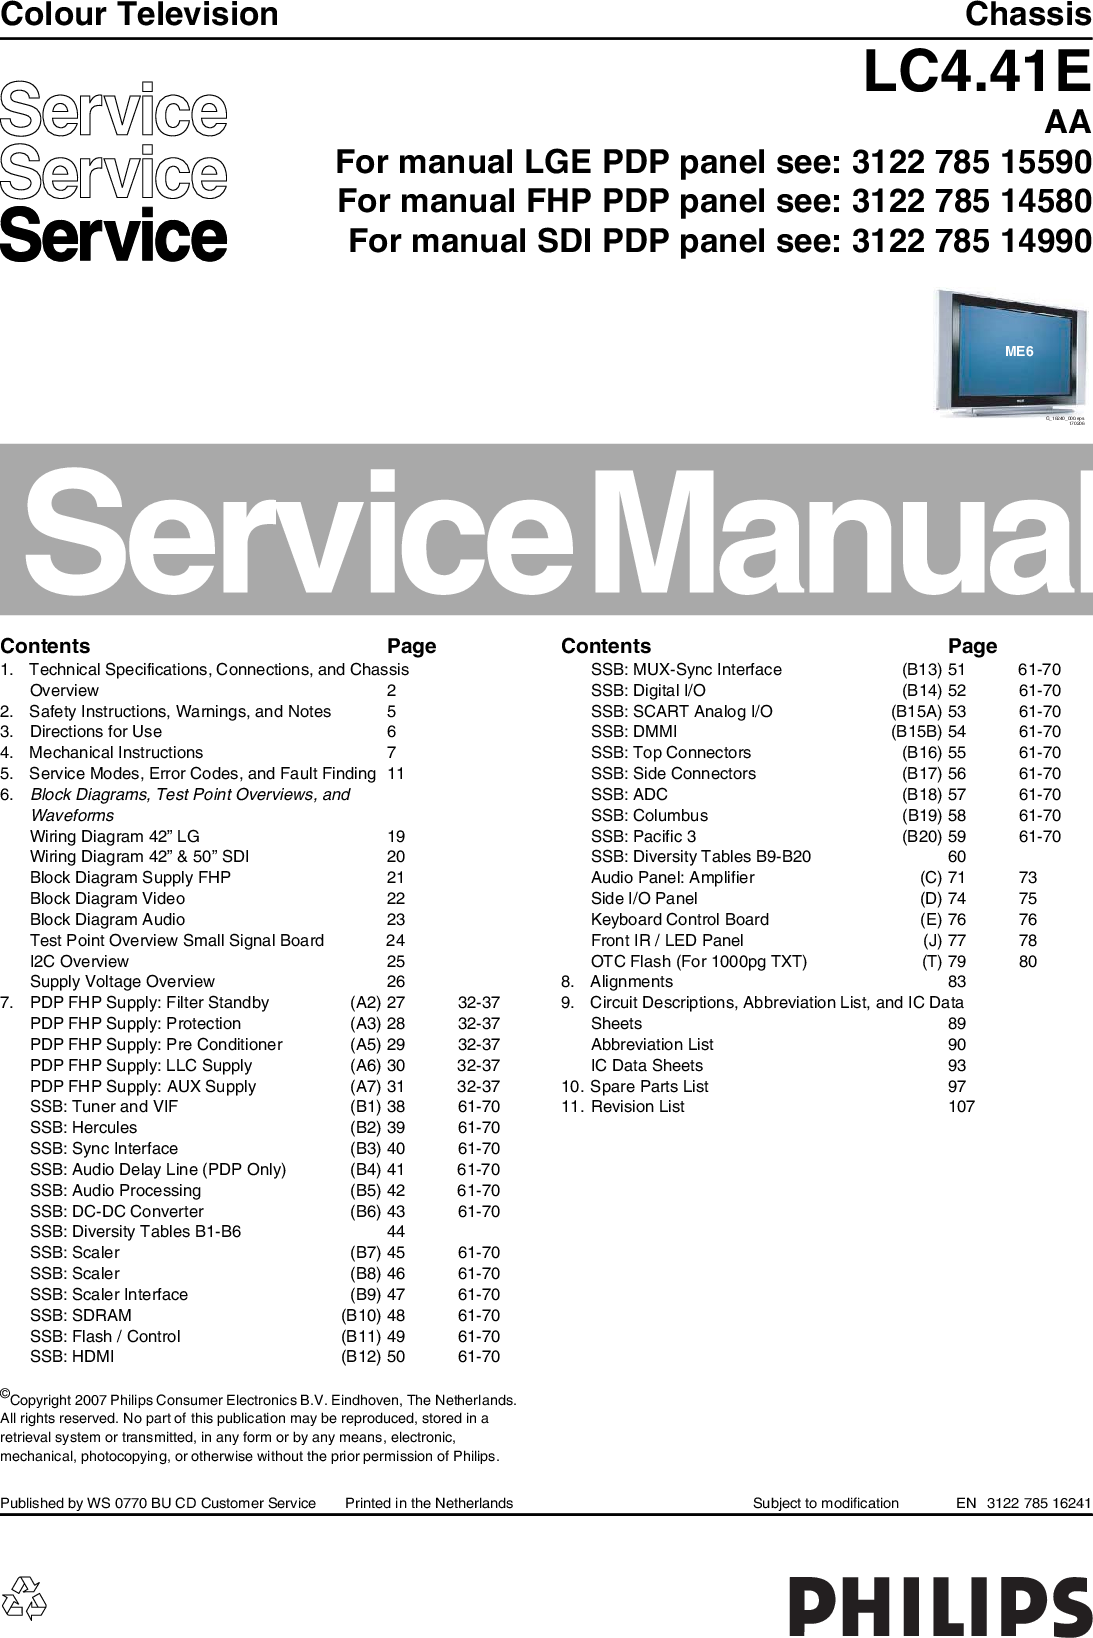 Philips Chassis LC4 41E AA Service Manual  Www s manuals com